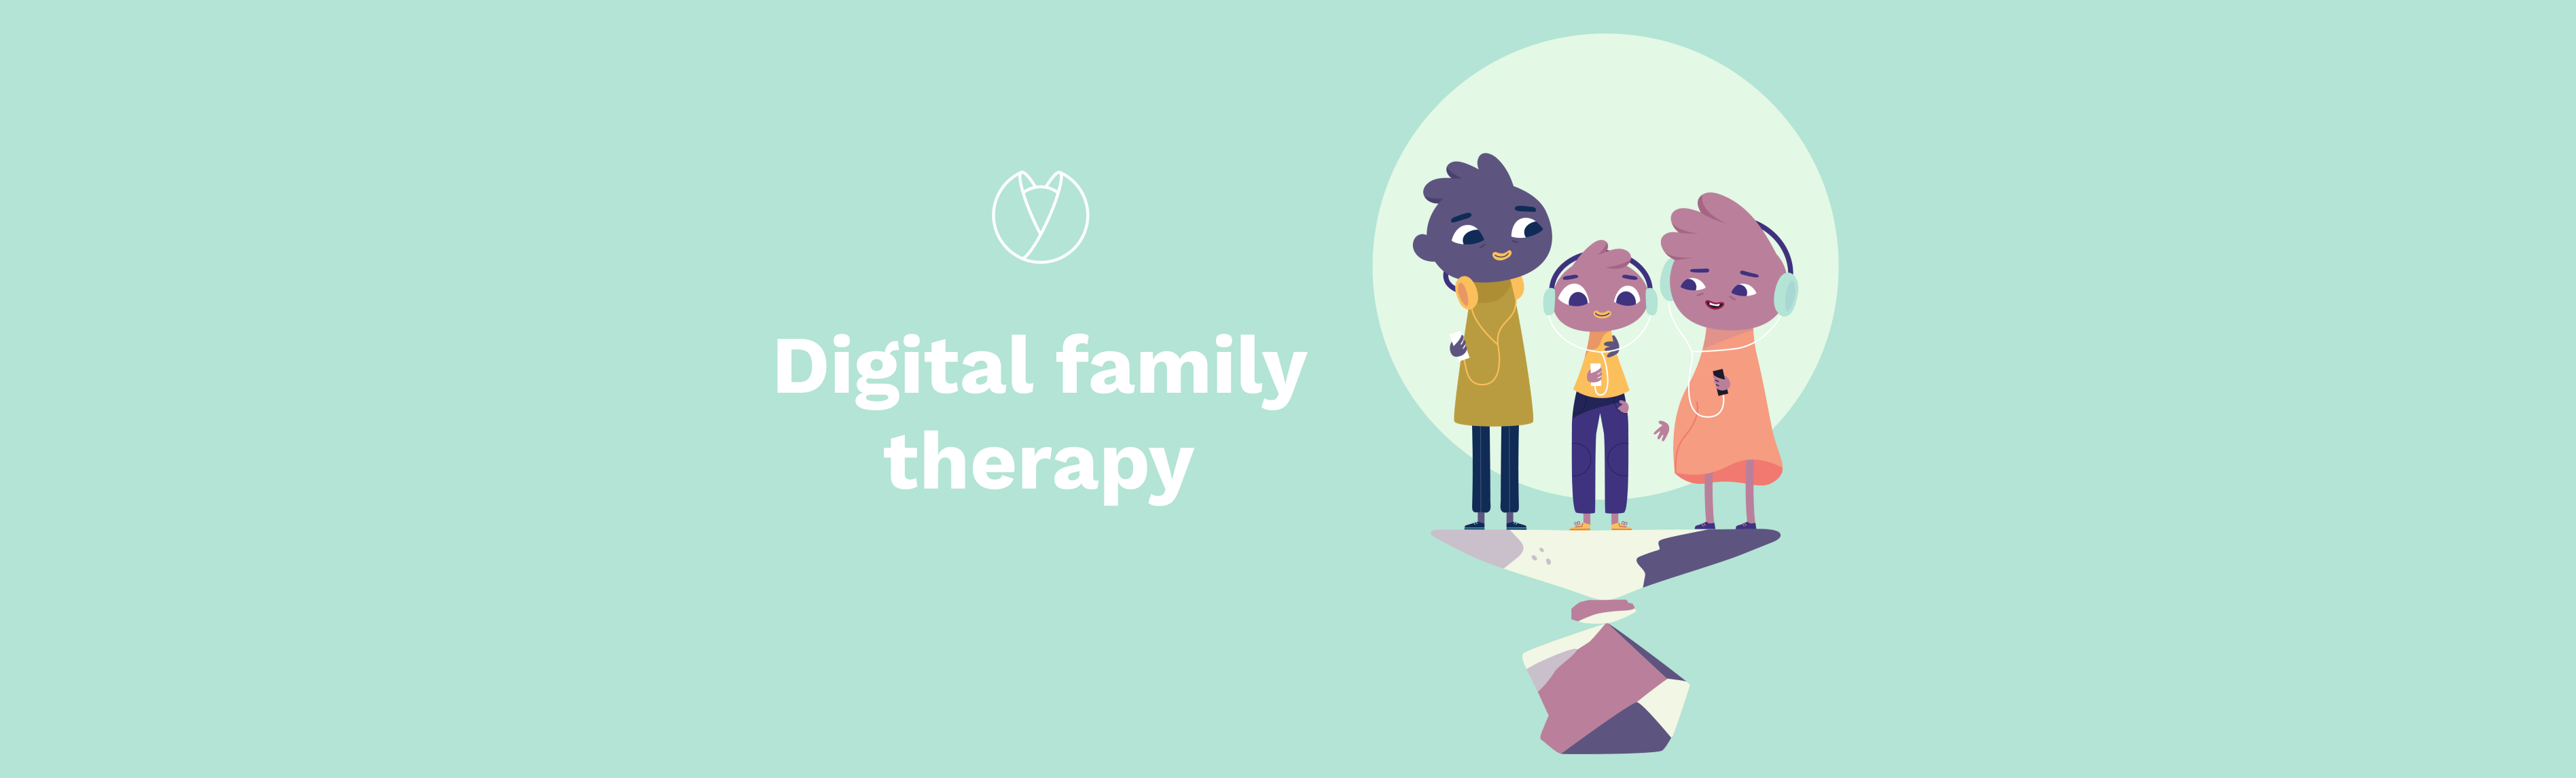 Digital family therapy